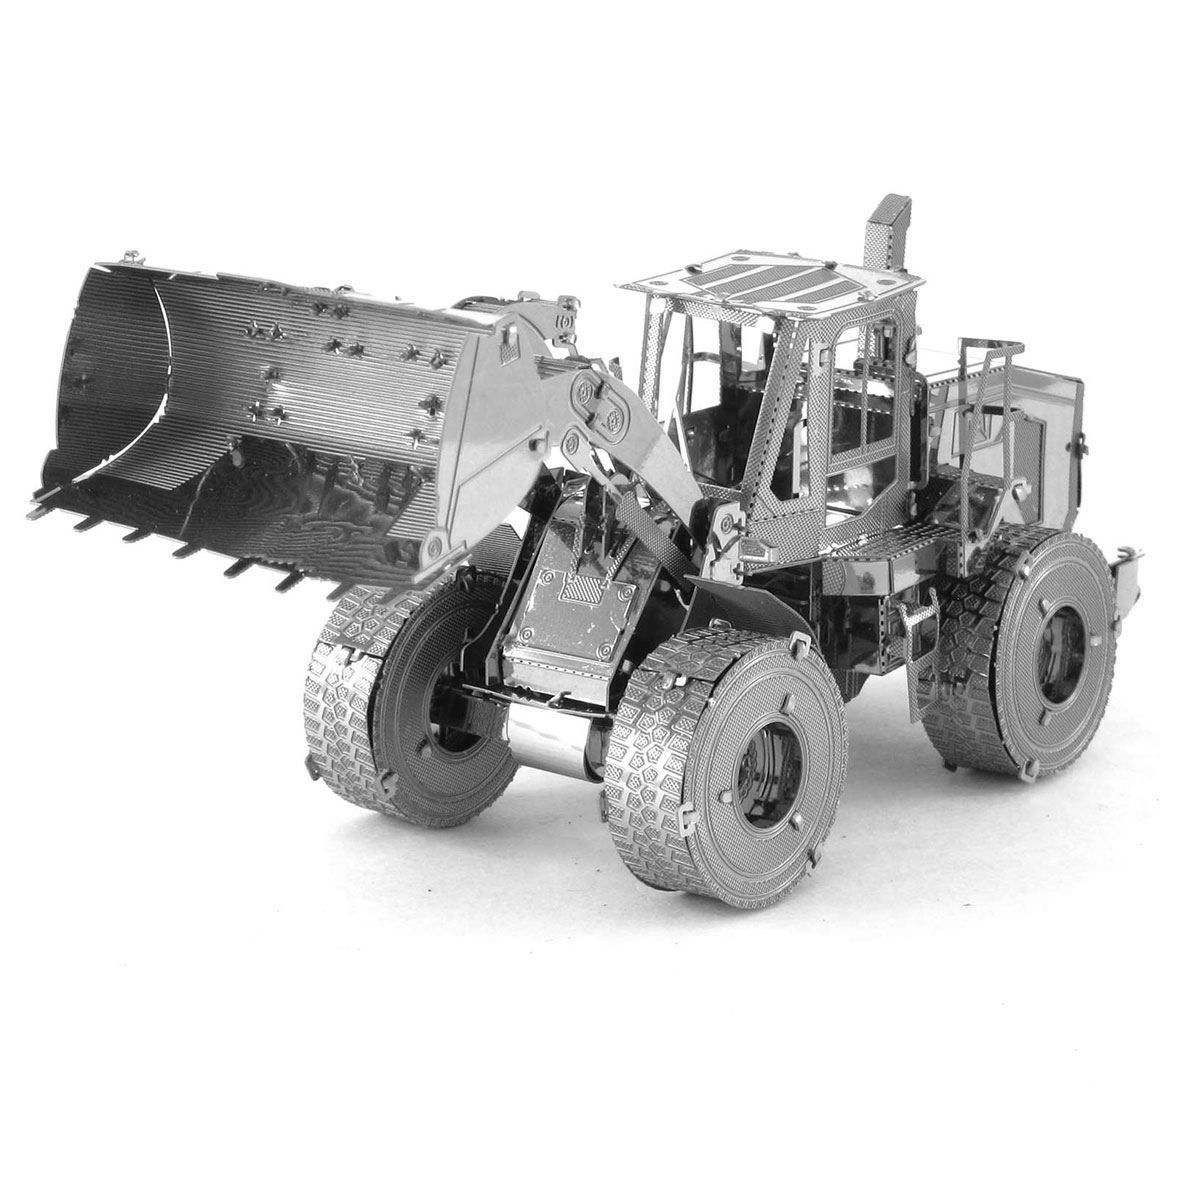 Metal Earth CAT Wheel Loader | Metal Earth | DIY 3D Metal Model Kits